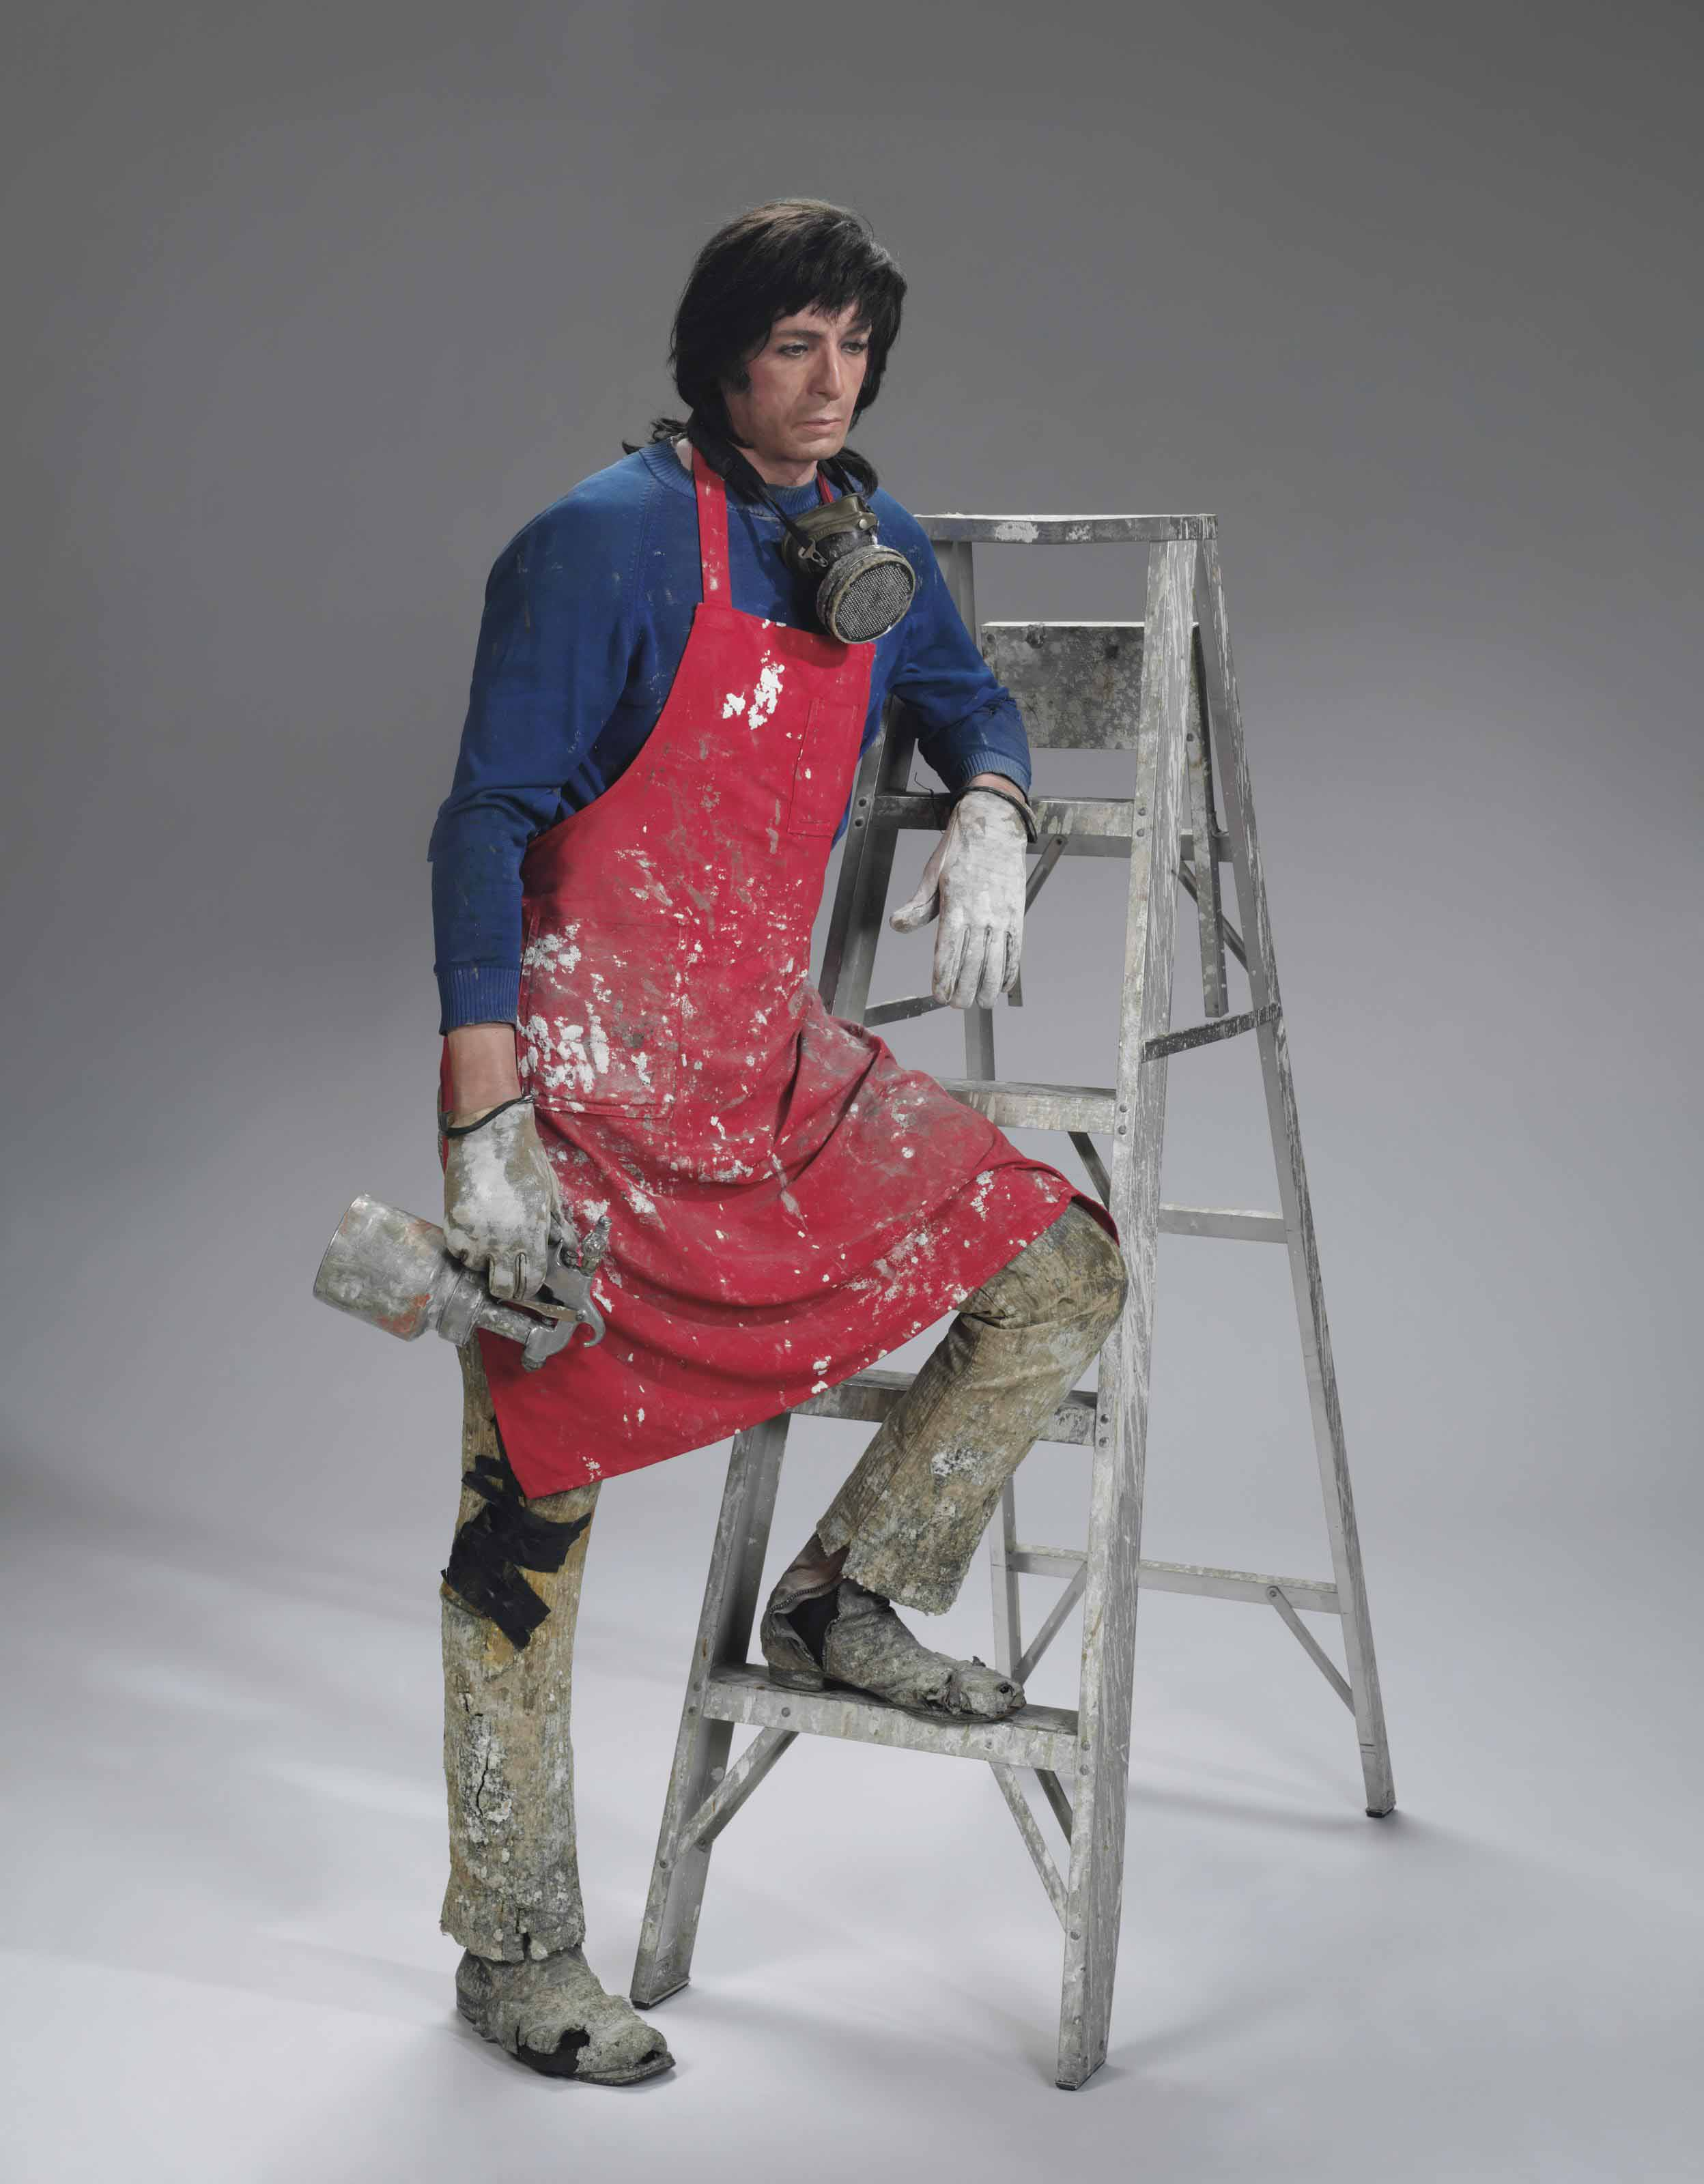 Artist with Ladder